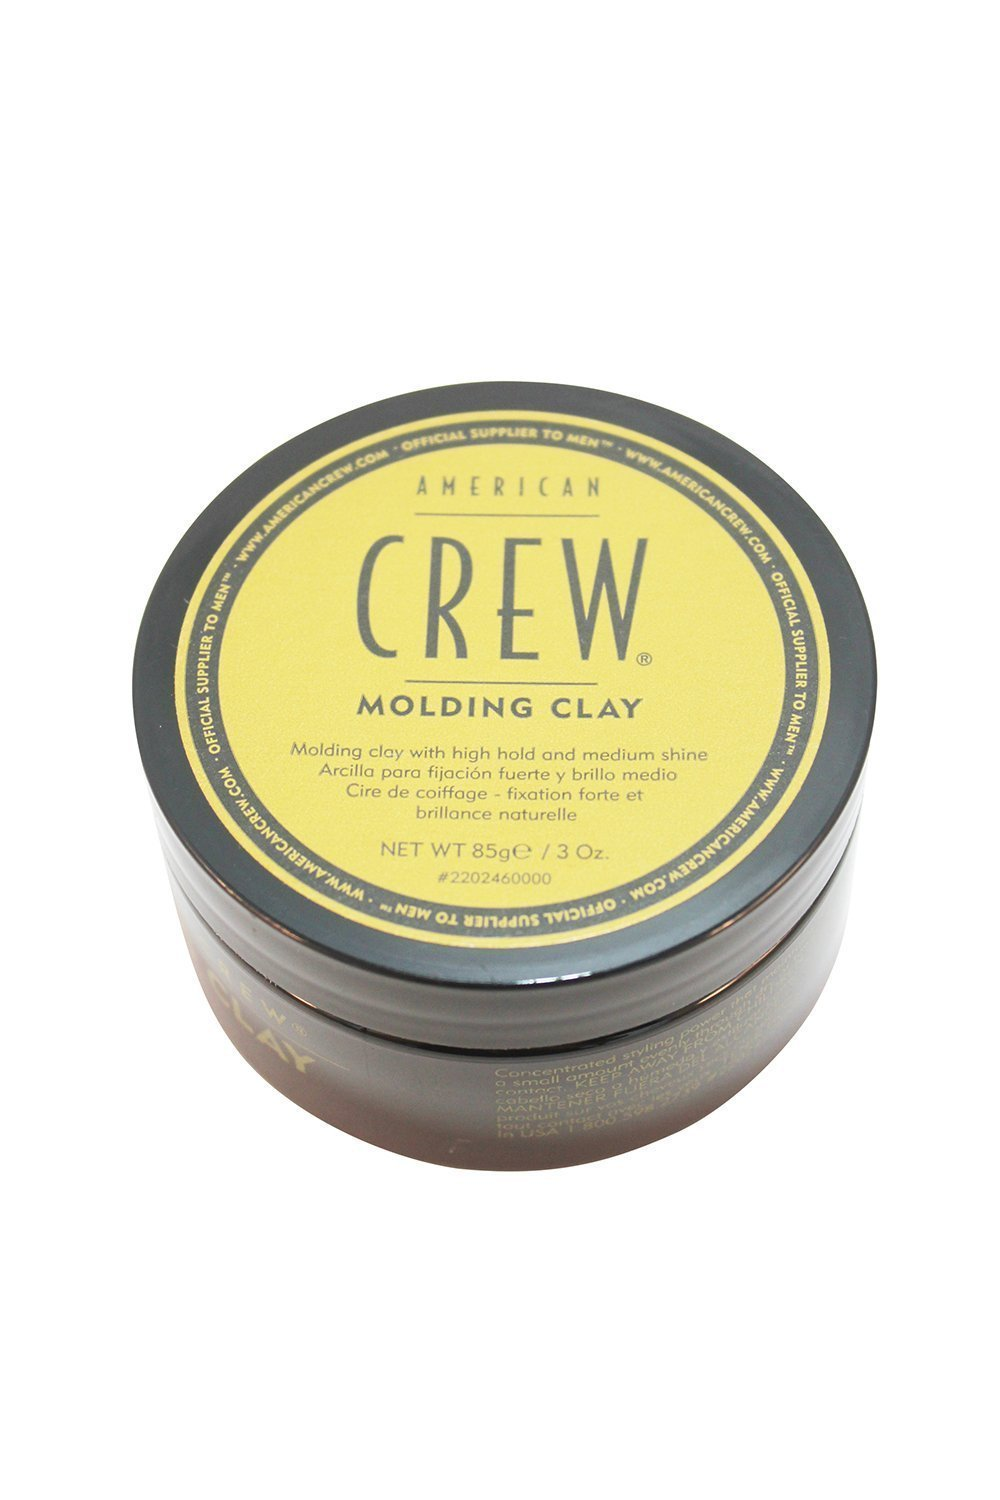 American Crew Molding Clay 3oz (Pack of 2)